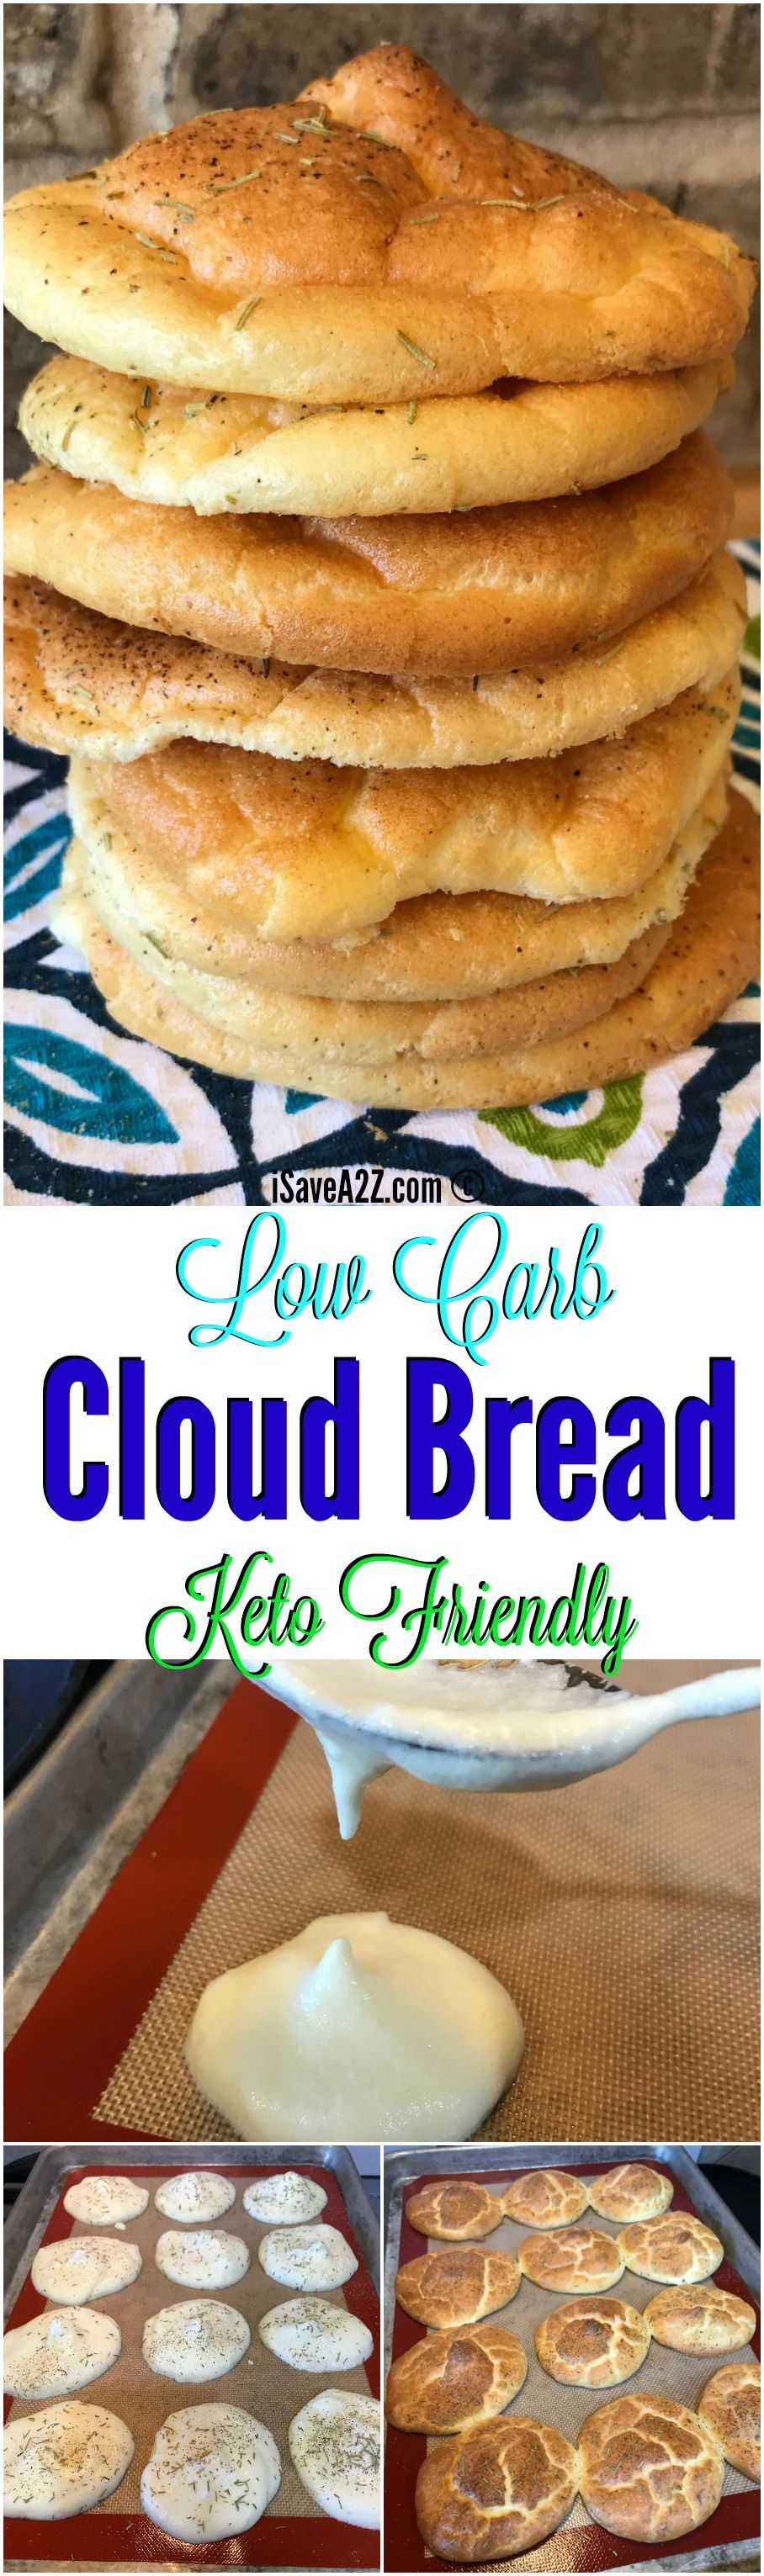 Low Carb Cloud Bread Recipe Made with Baking Soda and a keto friendly recipe!